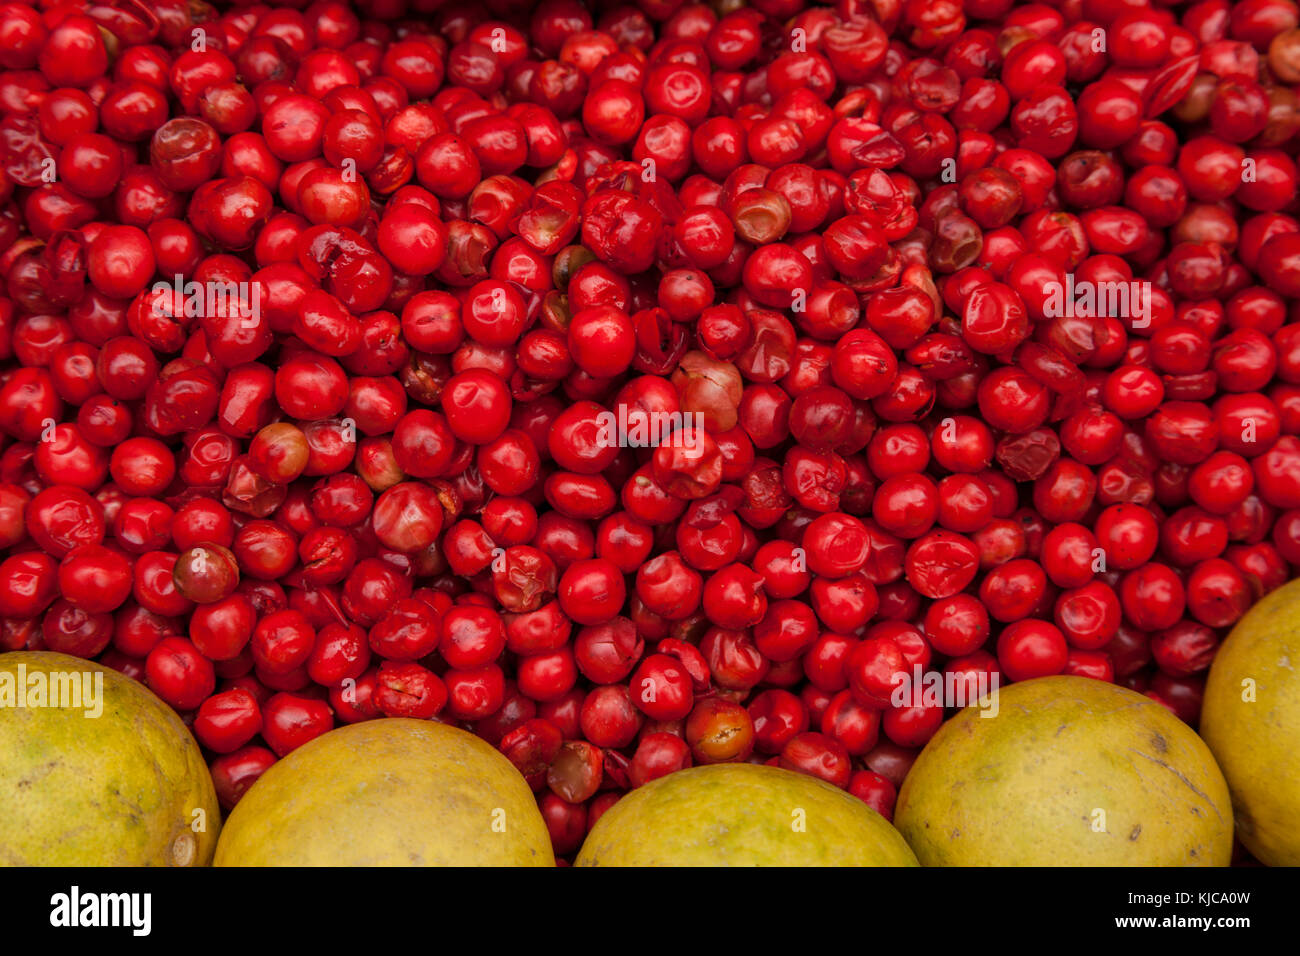 Grapefruit and red berries in Charminar Market, Hyderabad, India. - Stock Image